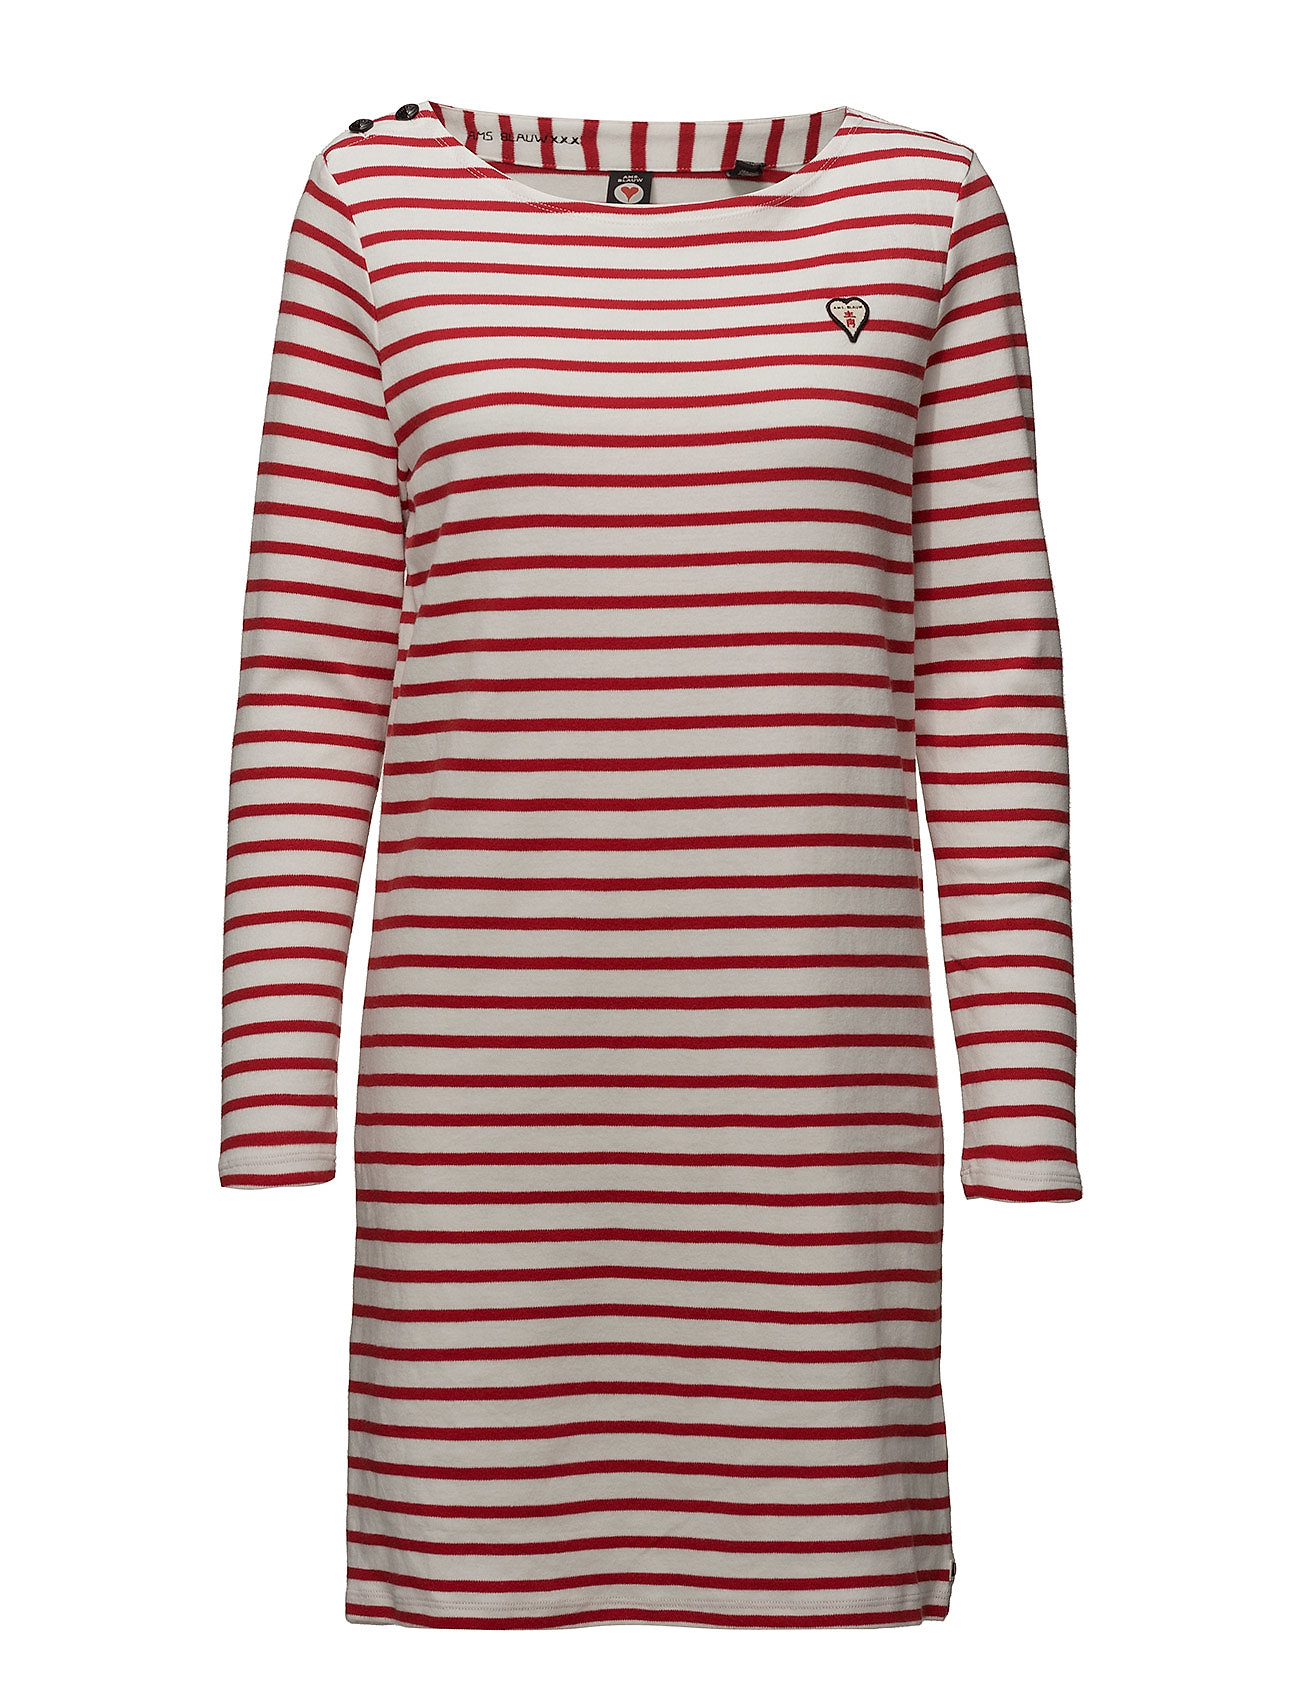 Classic Breton Dress With Shoulder Closure